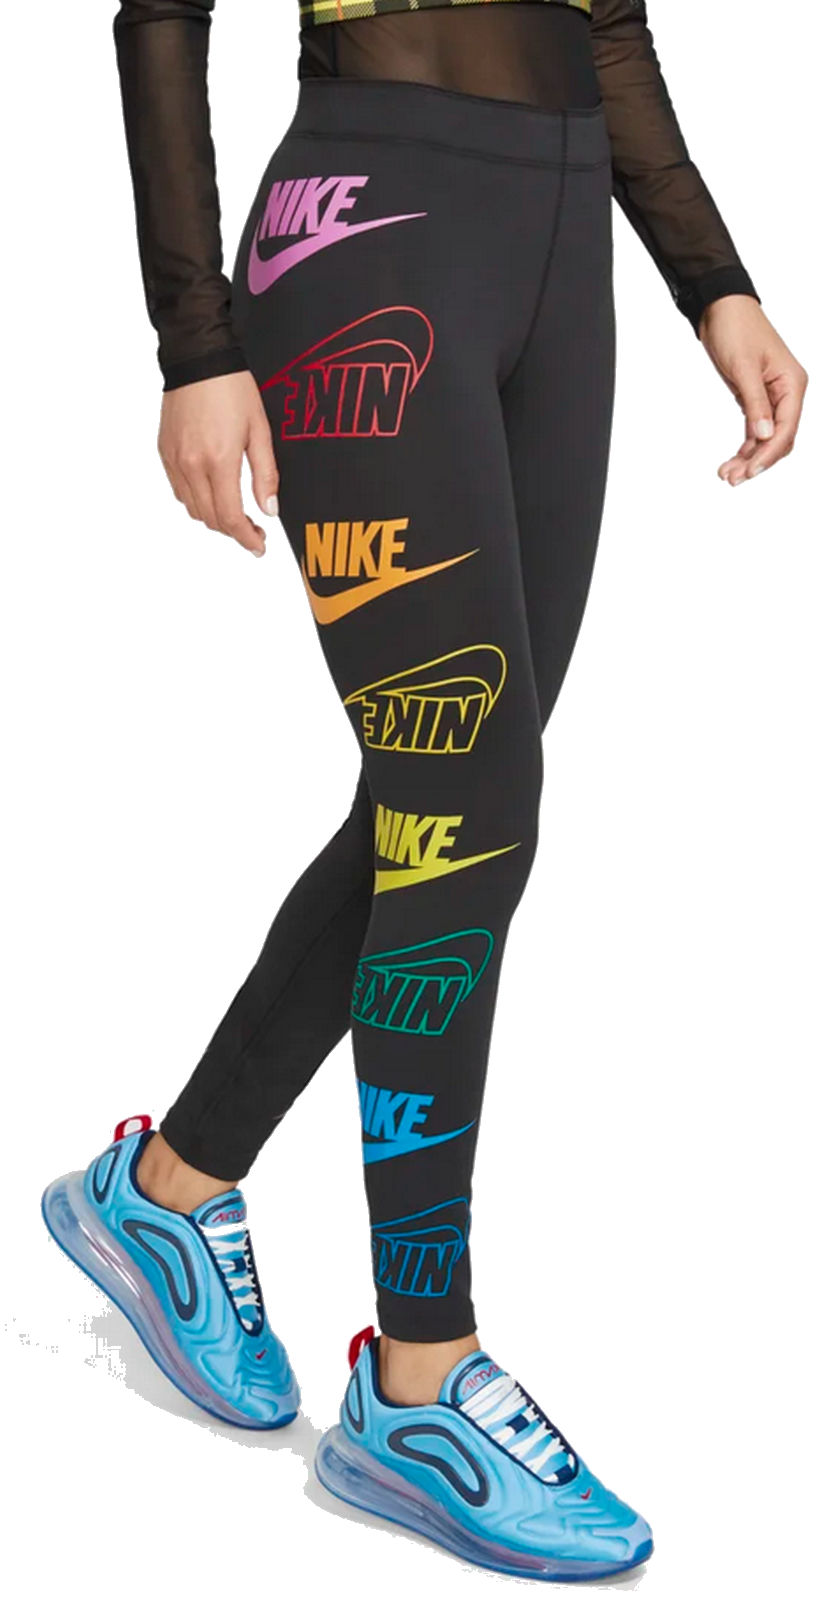 Nike Coloured title about NSW Leg Details Pants Ladies Sea Black show Fitness O Training original Leggings Multi Nike DY9EHbeW2I